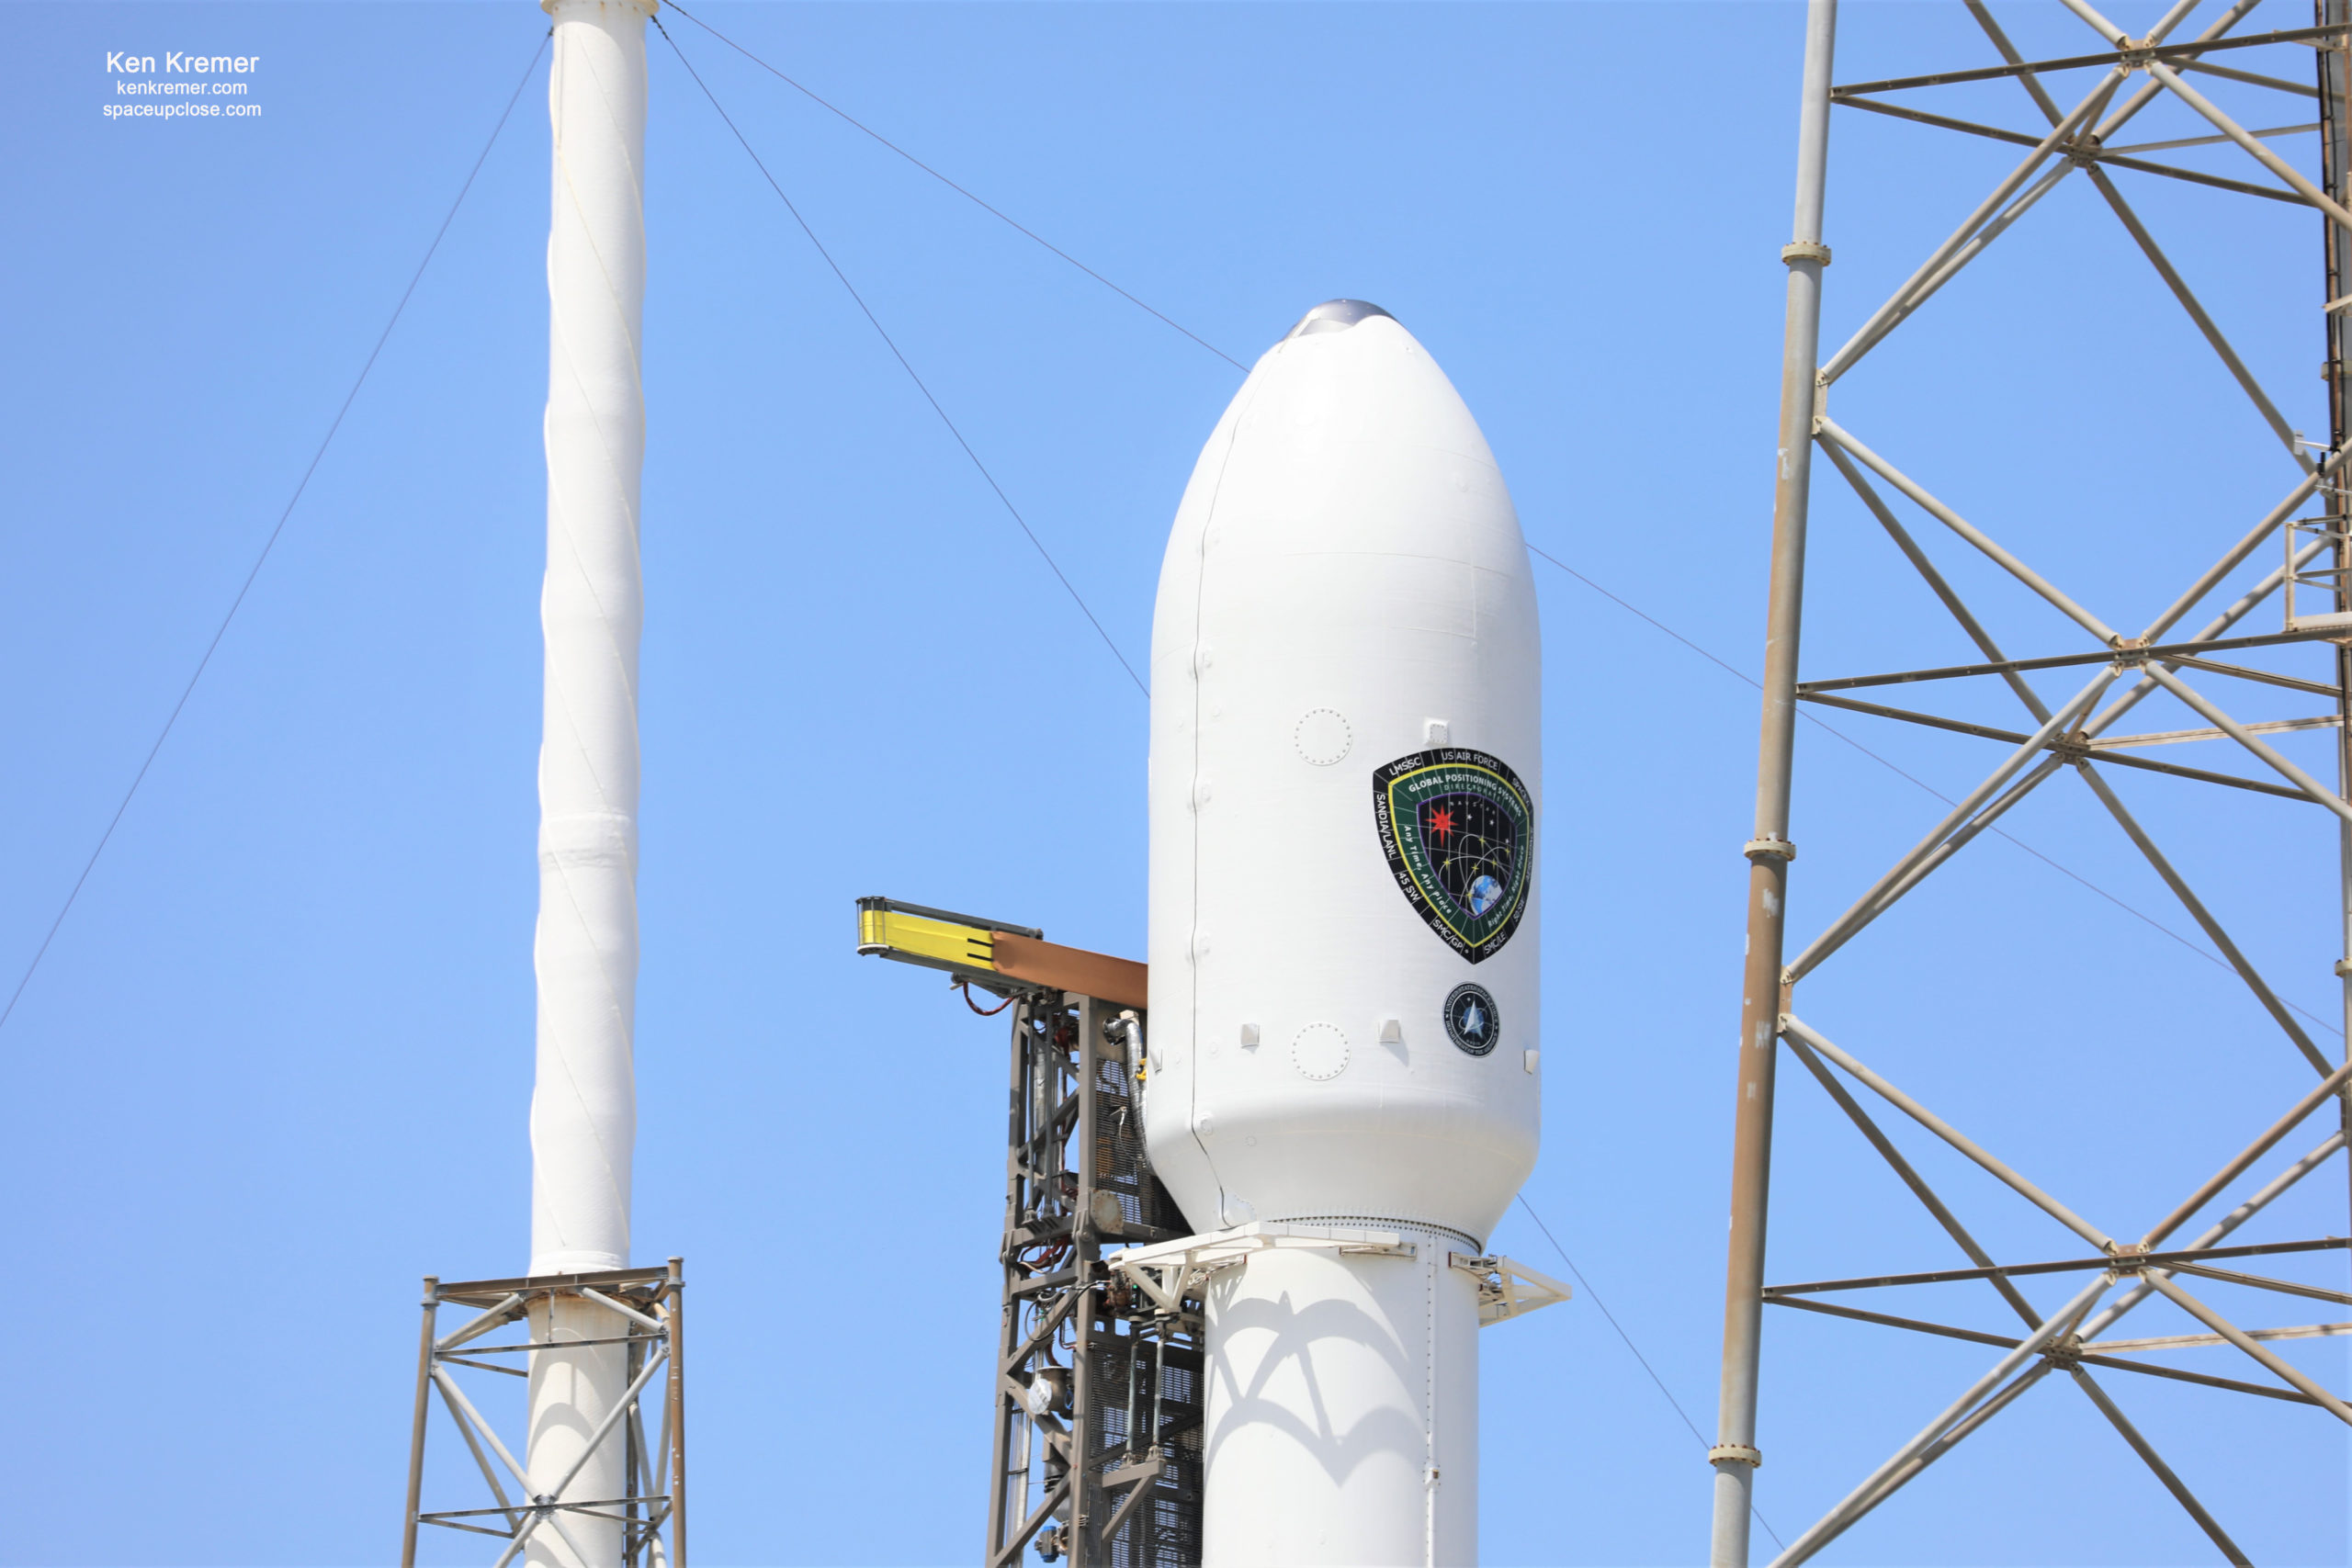 SpaceX Falcon 9 Poised for June 30 Liftoff with Advanced GPS Navigation Satellite for US Space Force: Photos/Watch Live